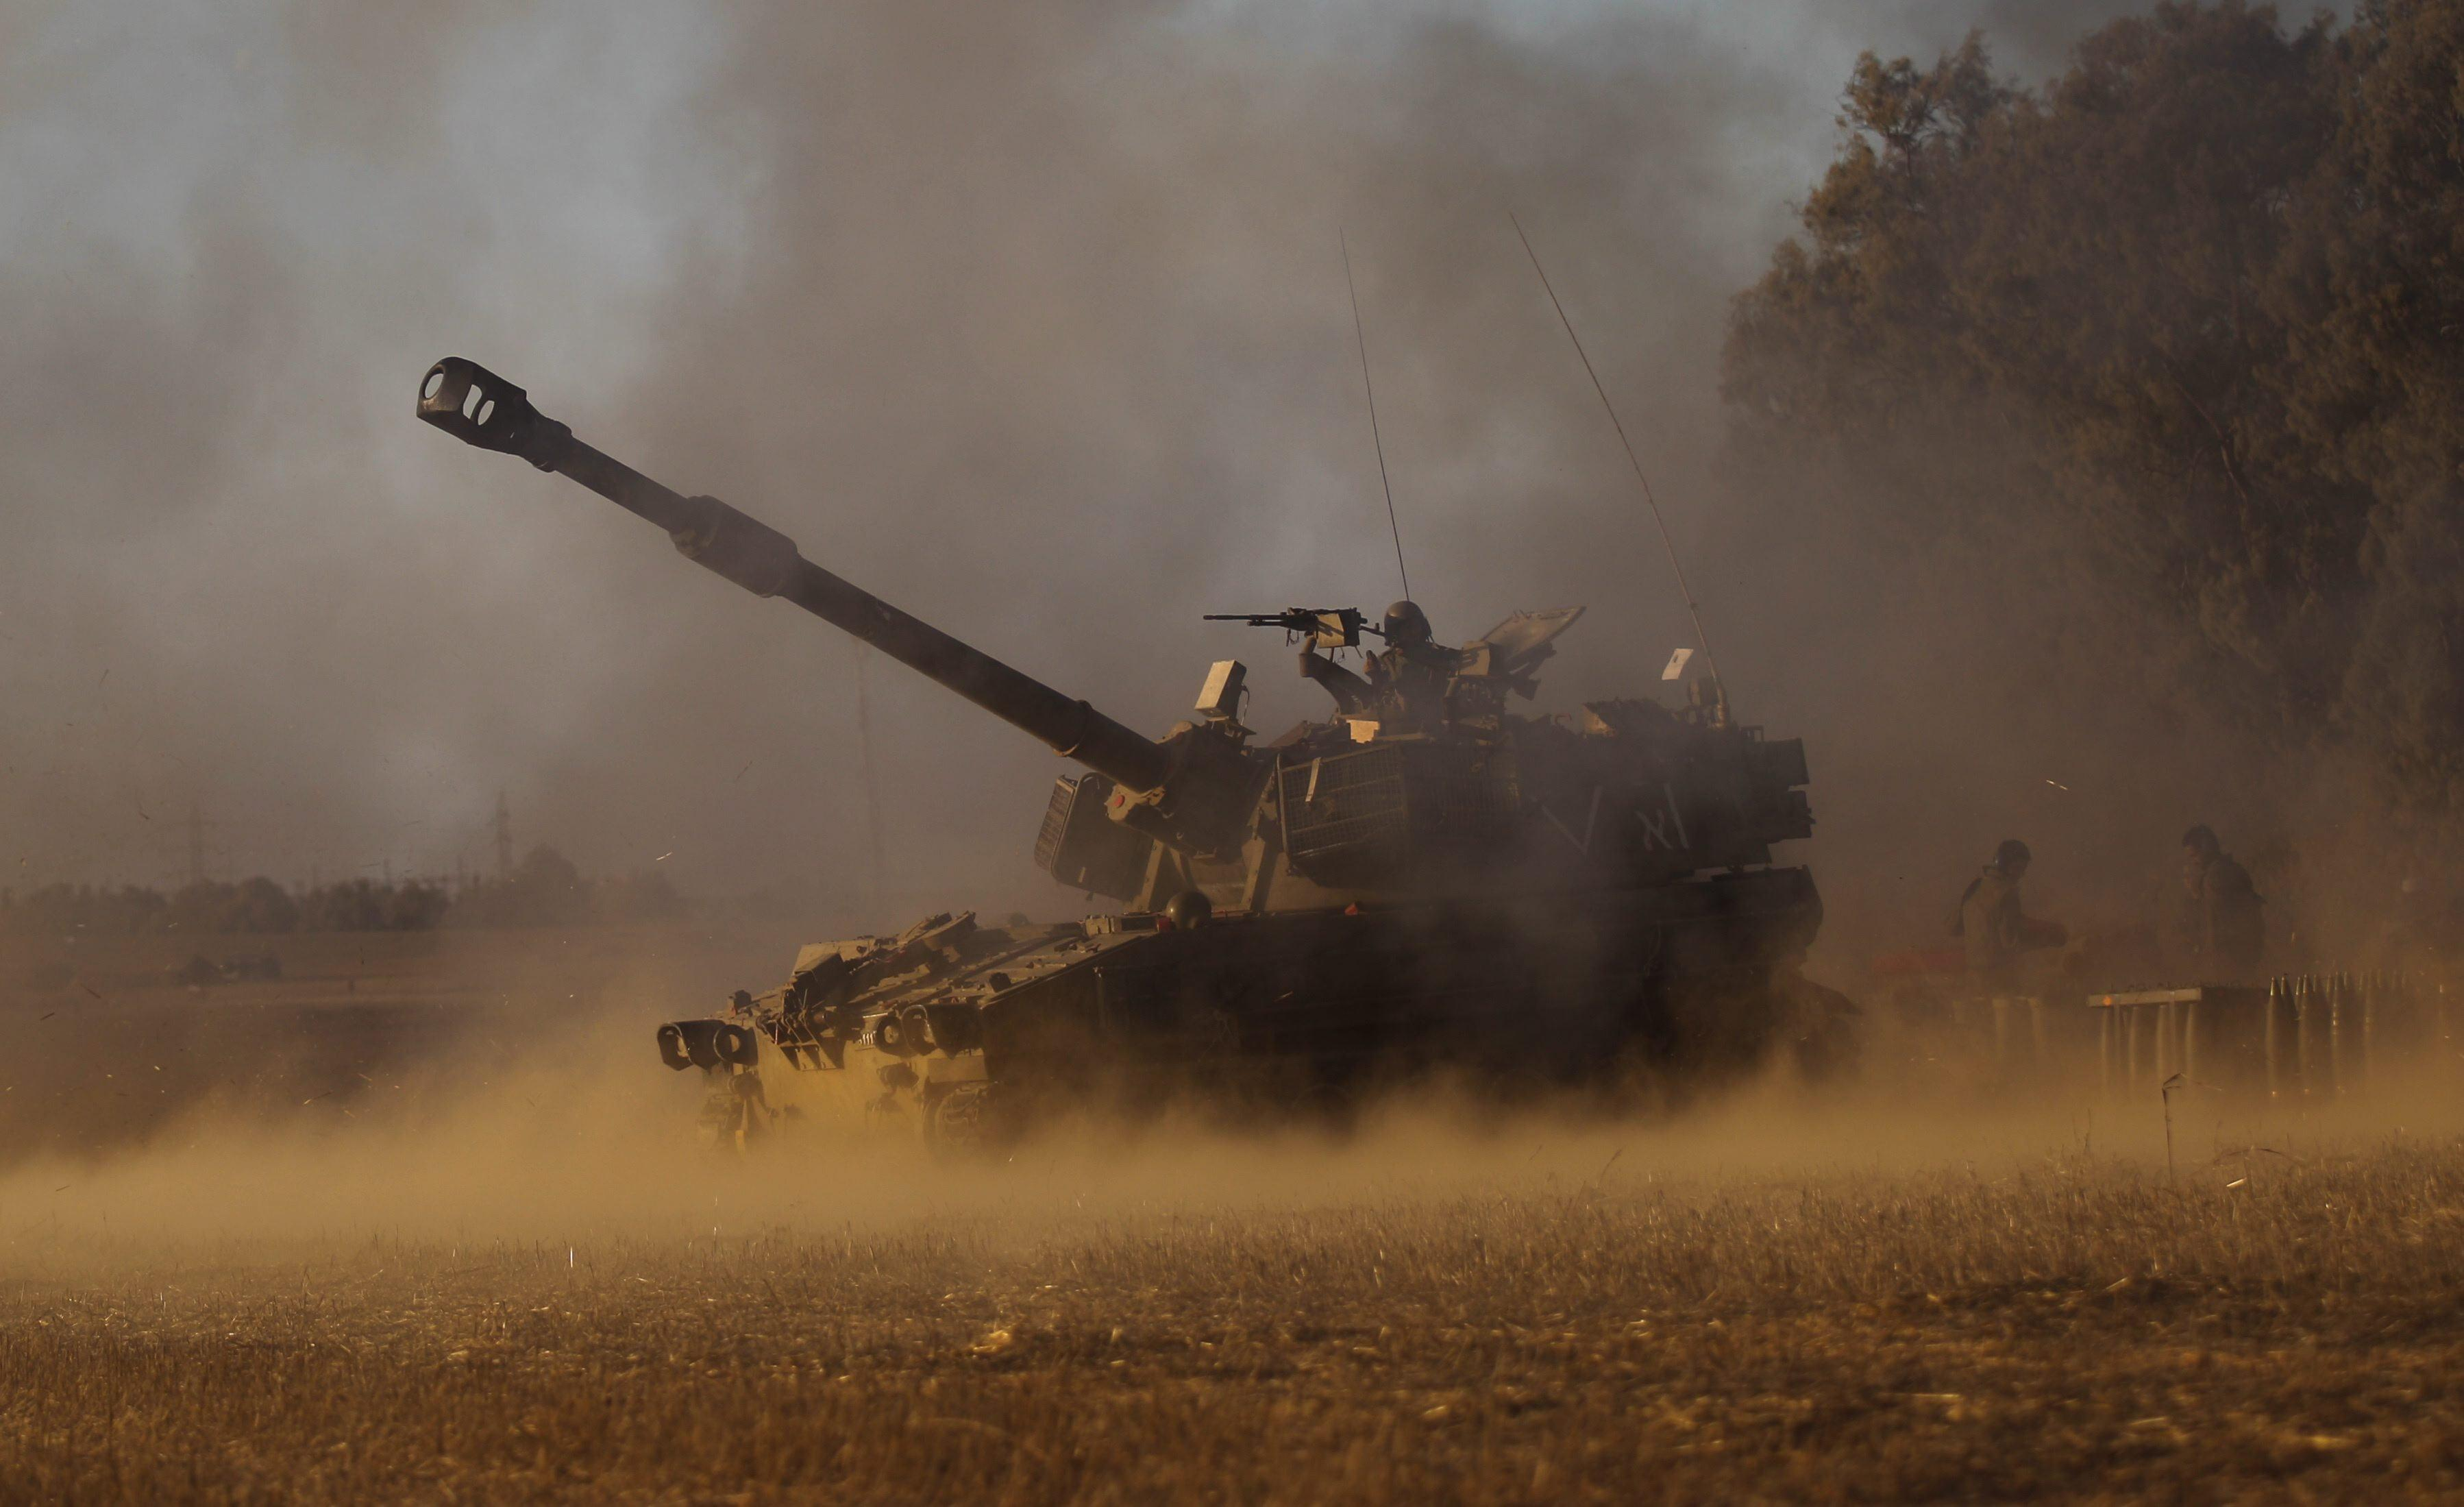 Image: Israelis hit Gaza and search for missing soldier